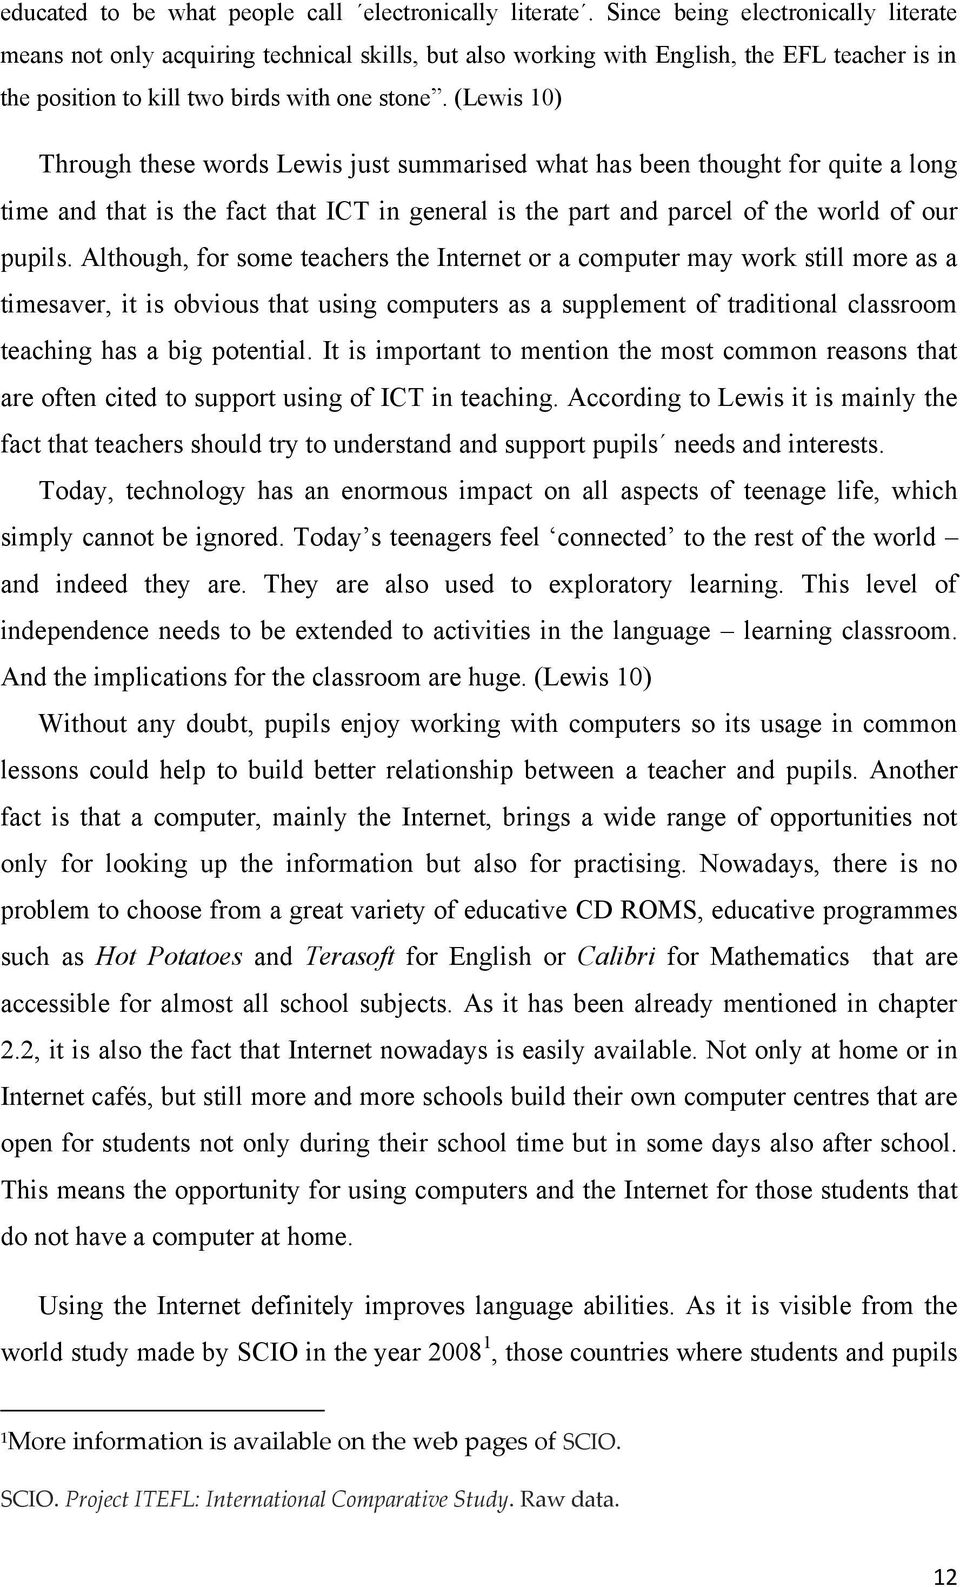 (Lewis 10) Through these words Lewis just summarised what has been thought for quite a long time and that is the fact that ICT in general is the part and parcel of the world of our pupils.